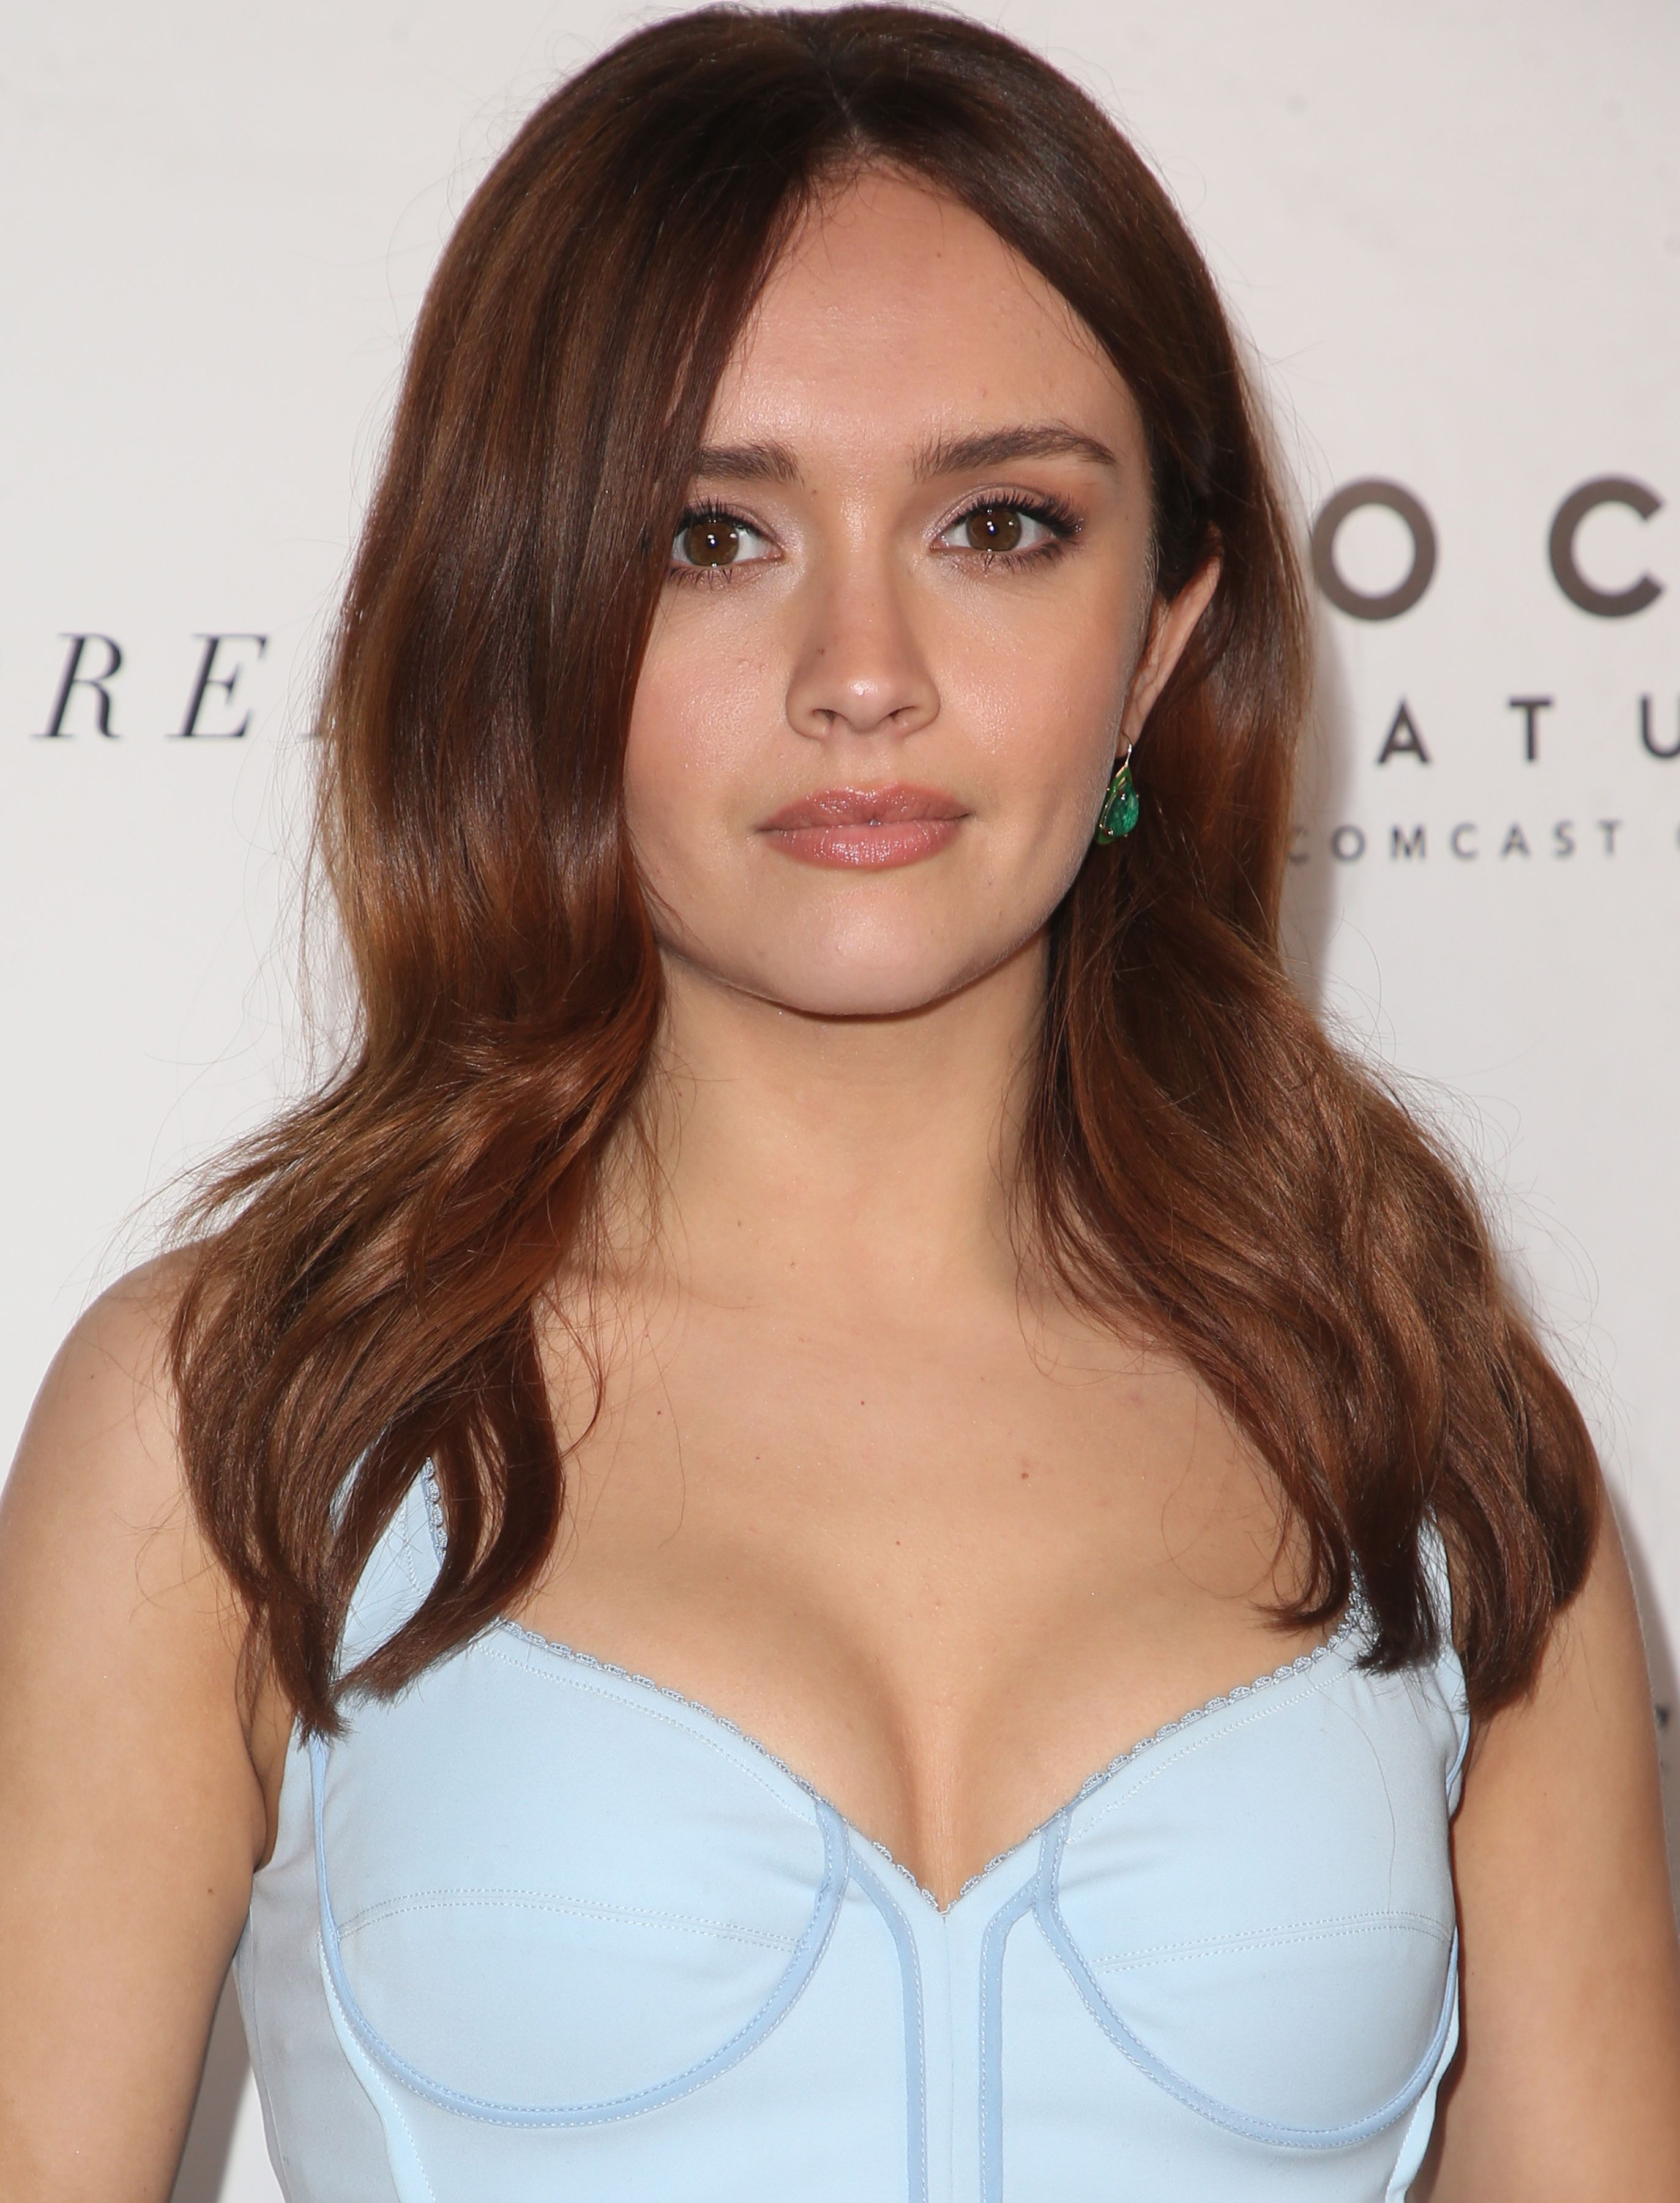 2019 Olivia Cooke nudes (72 foto and video), Tits, Fappening, Feet, panties 2020